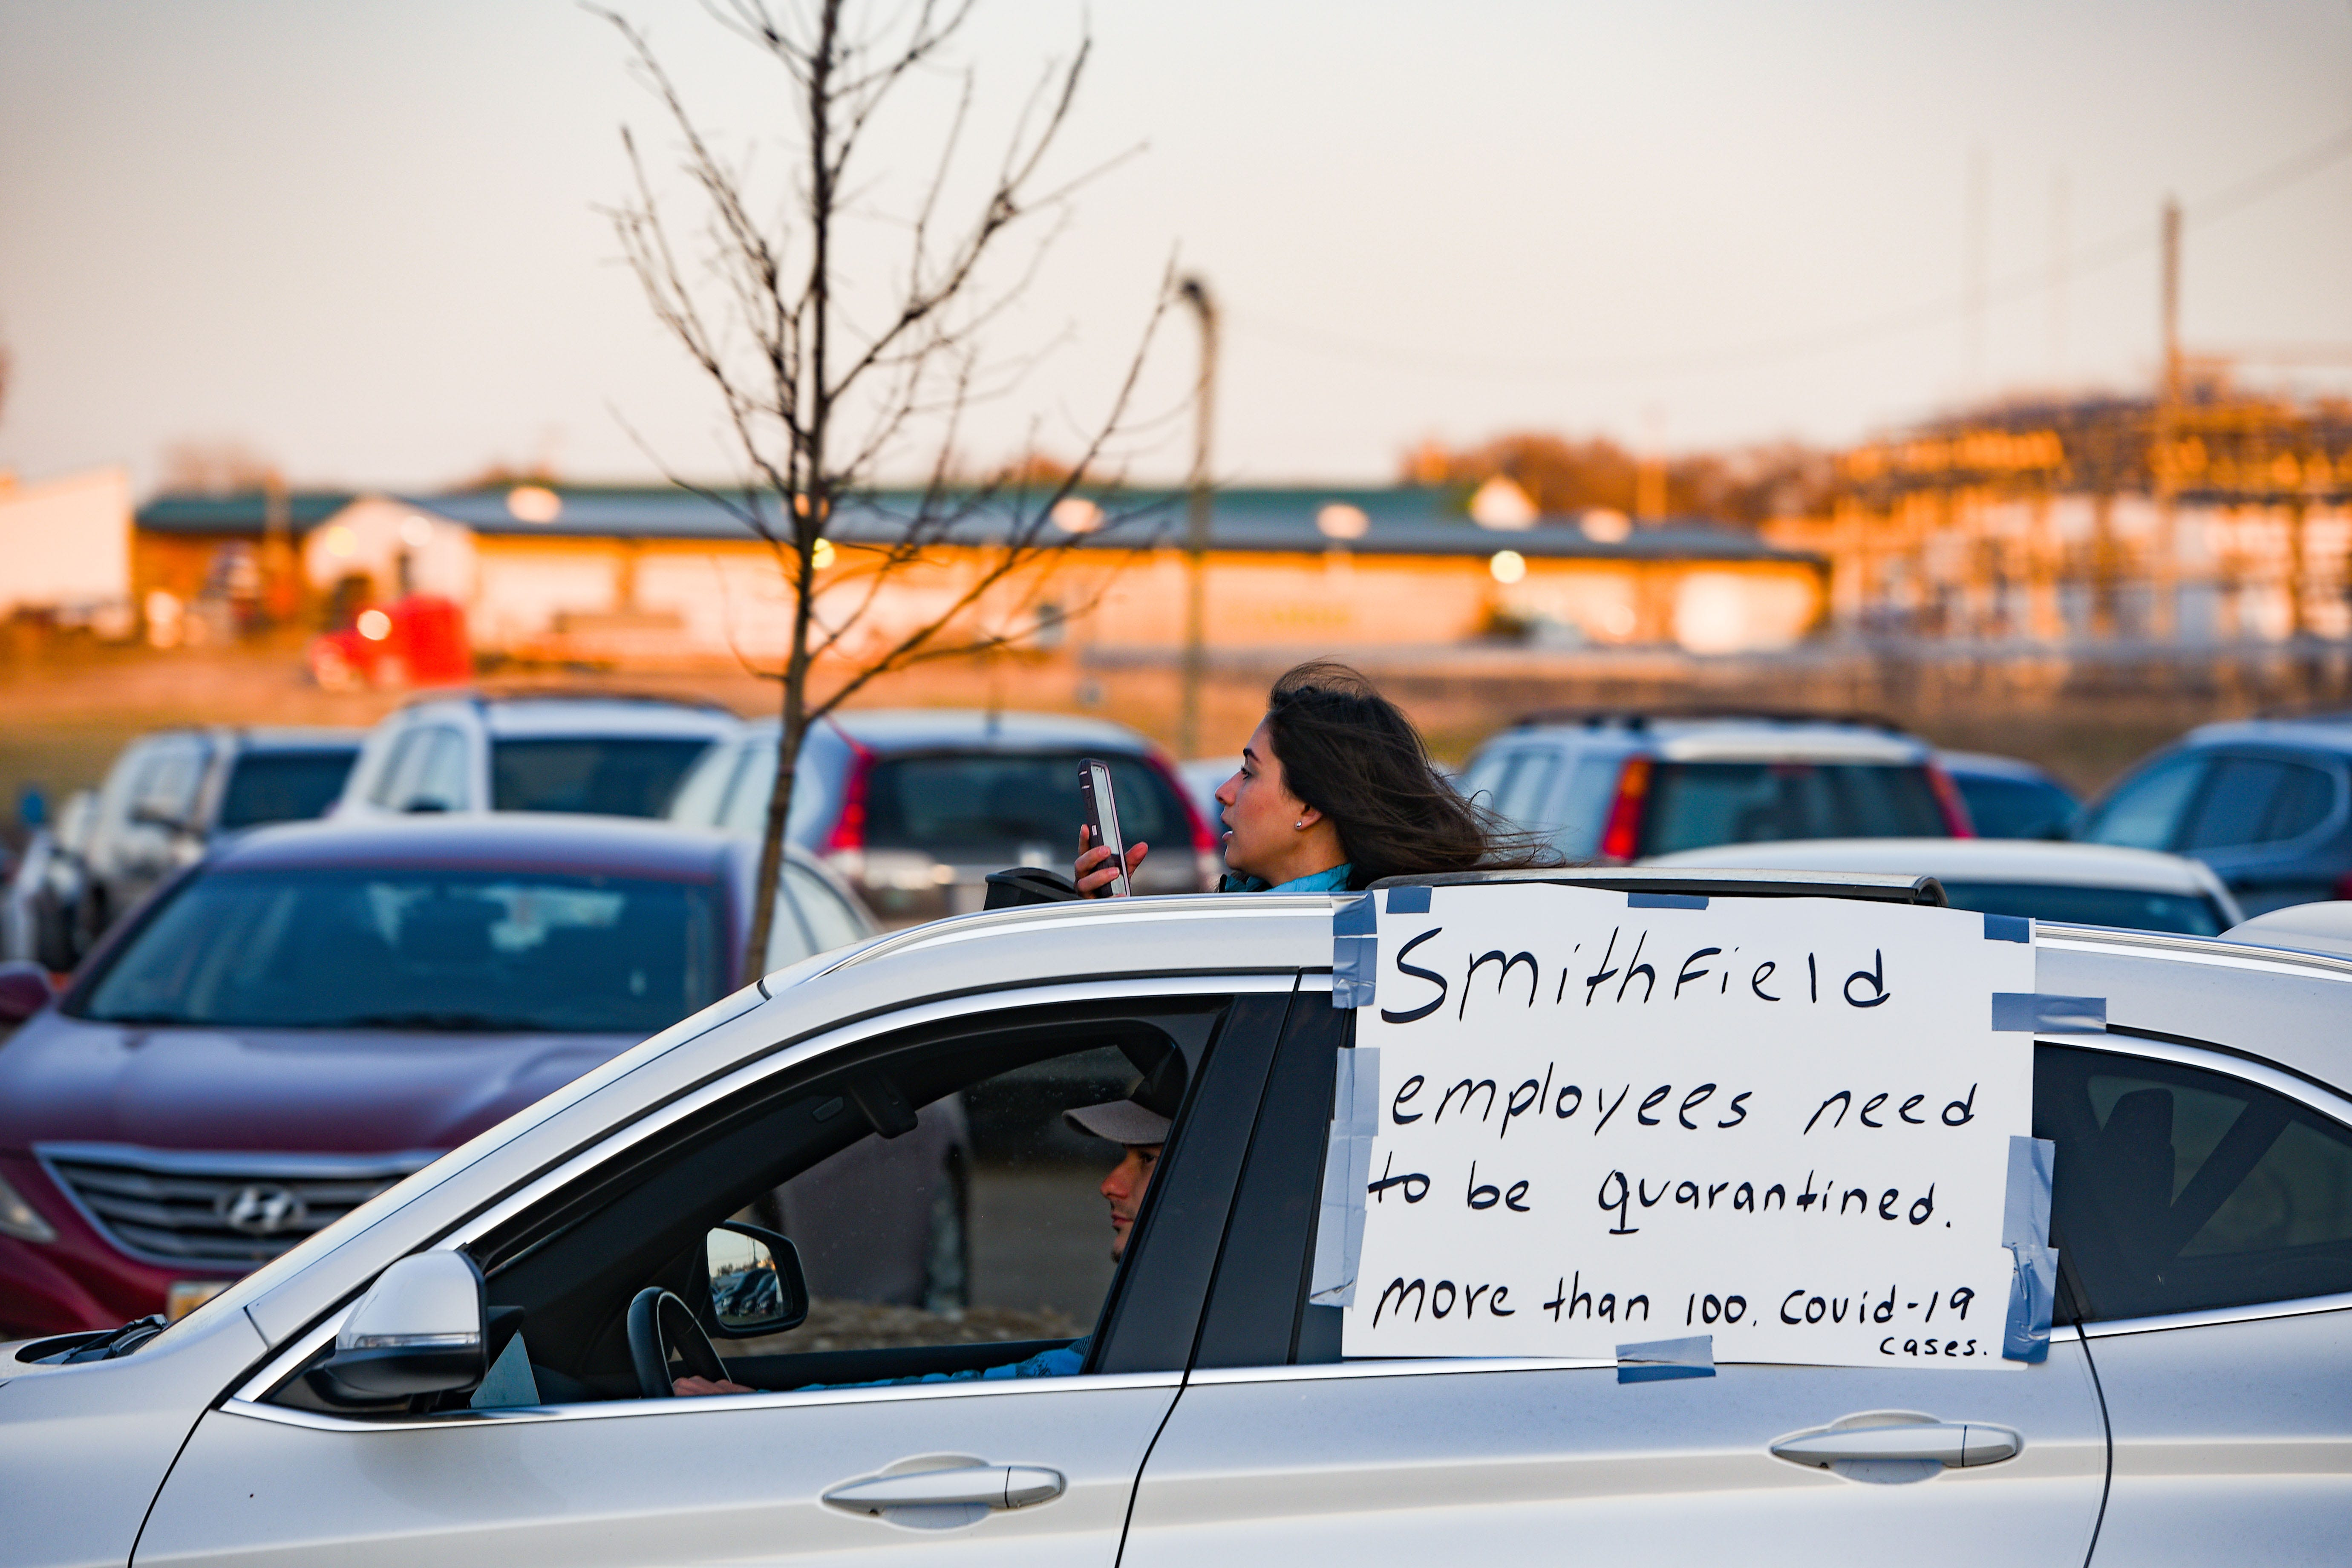 A protester records the demonstration on her phone out the sunroof of her car while driving in solidarity with Smithfield Food, Inc. employees after many workers complained of unsafe working conditions due to the COVID-19 outbreak on Thursday, April 9, in Sioux Falls, SD.